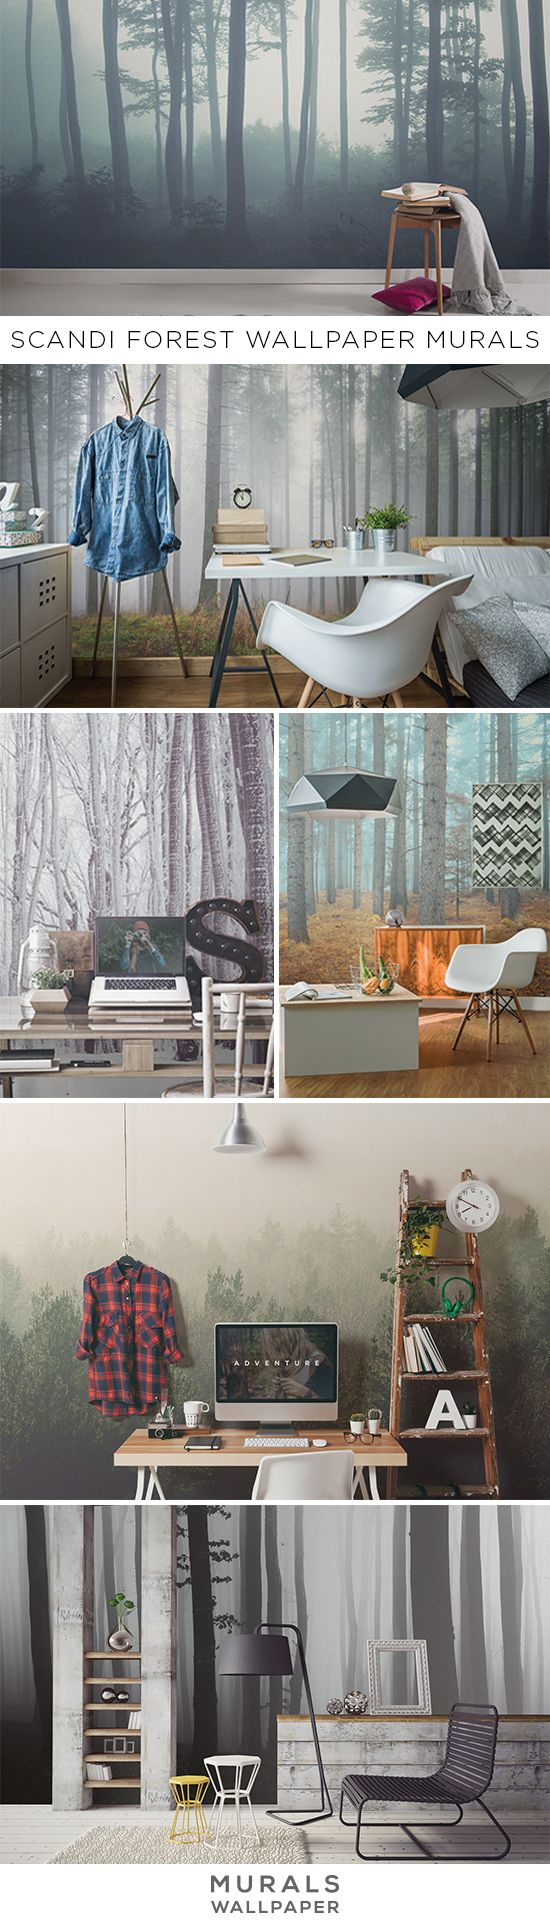 Interior design your house - Achieve Scandi With These Dreamy Forest Wallpaper Murals Interior Design